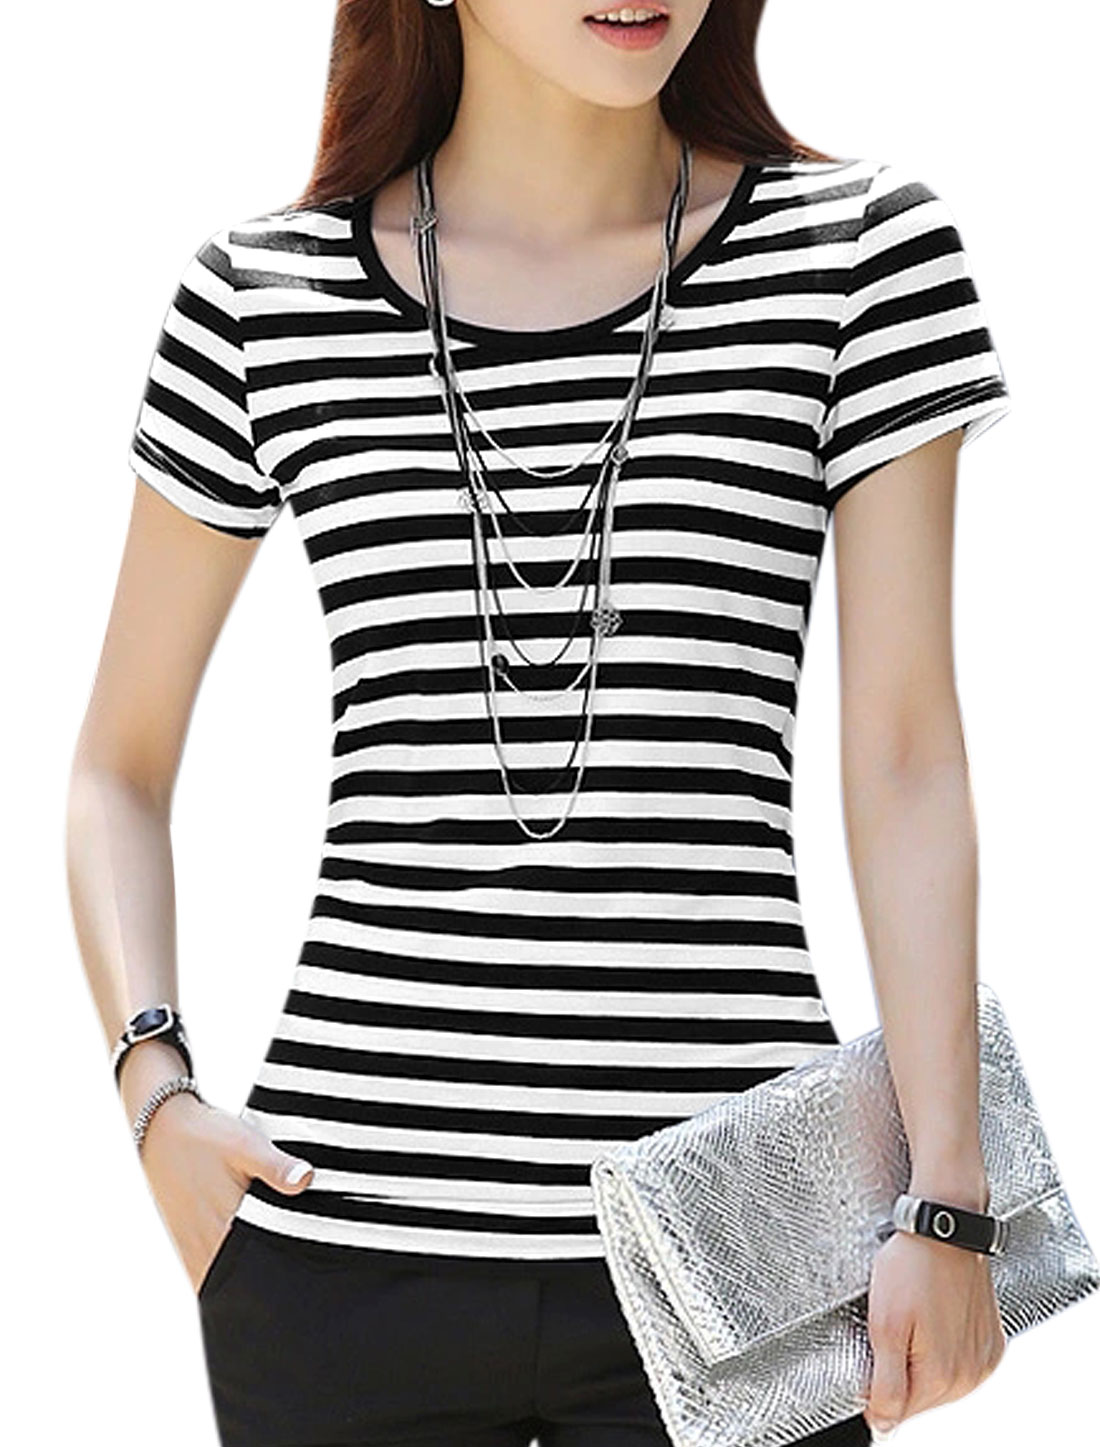 Woman Stripes Scoop Neck Floral Design Hollow Out Back Tee Black White XS